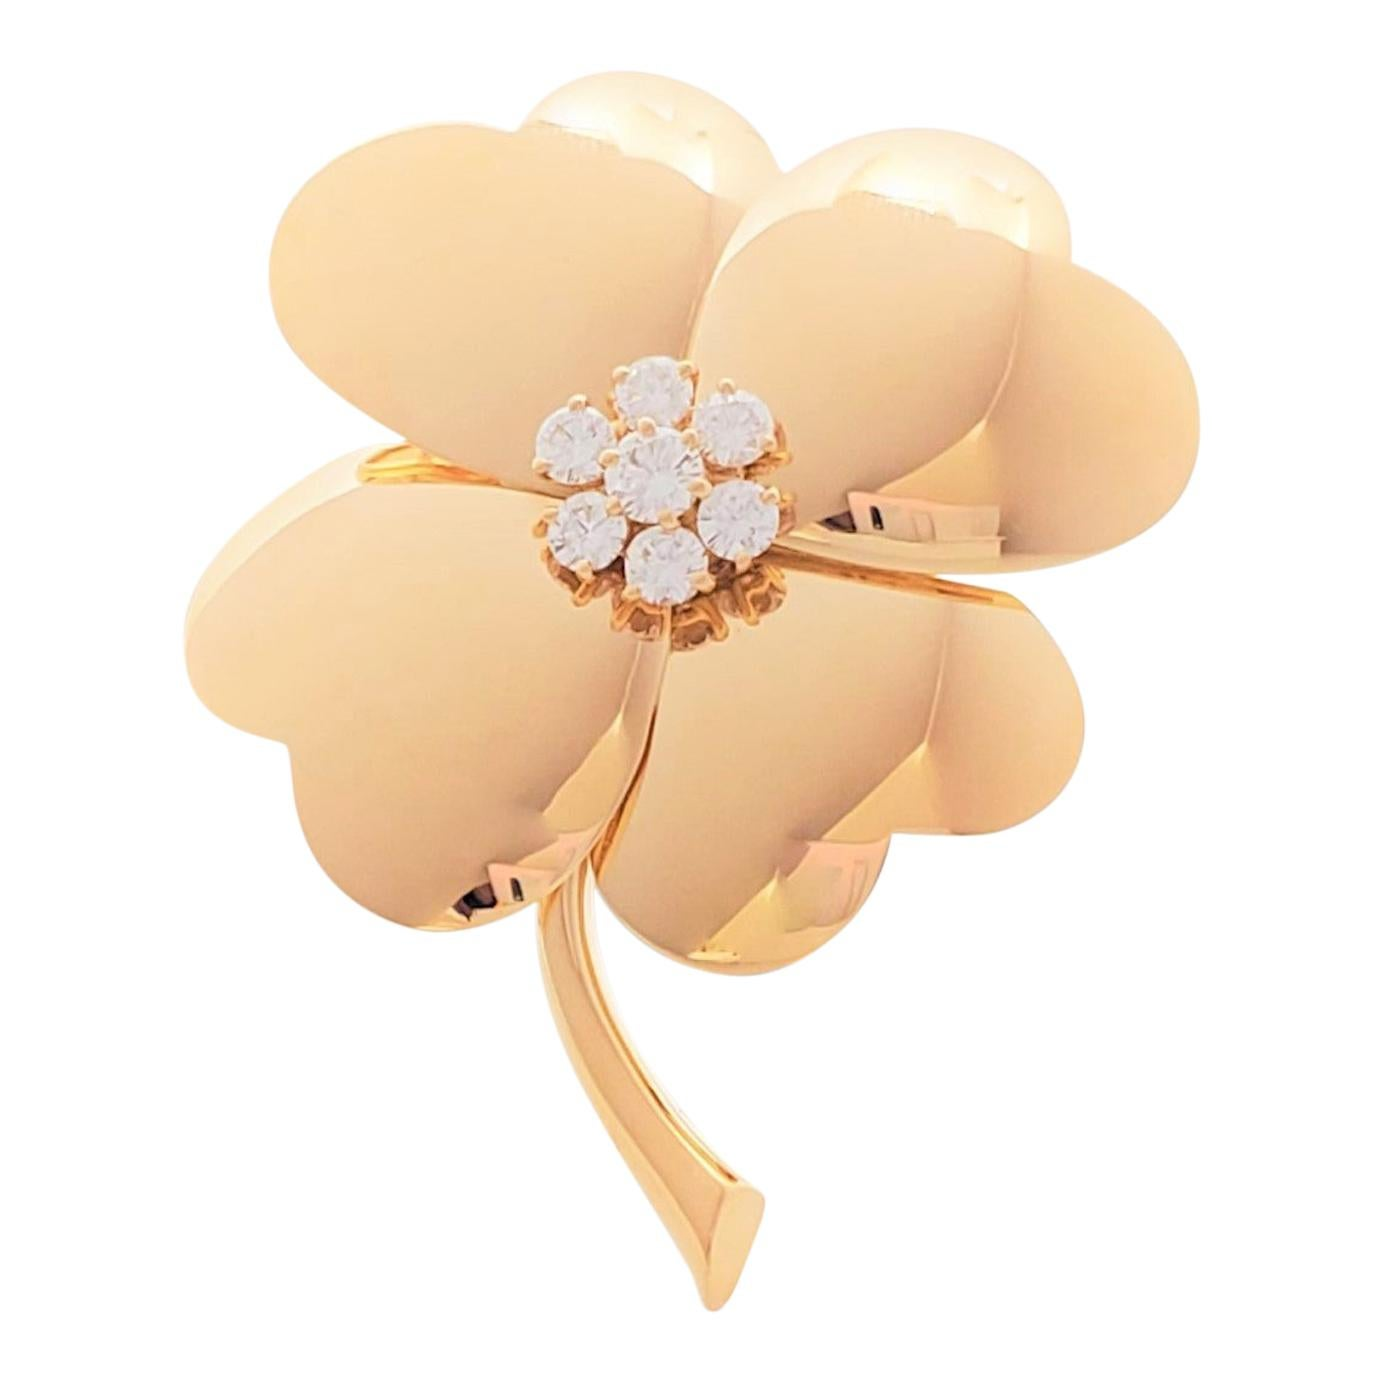 Van Cleef & Arpels 'Cosmos' Yellow Gold and Diamond Pin